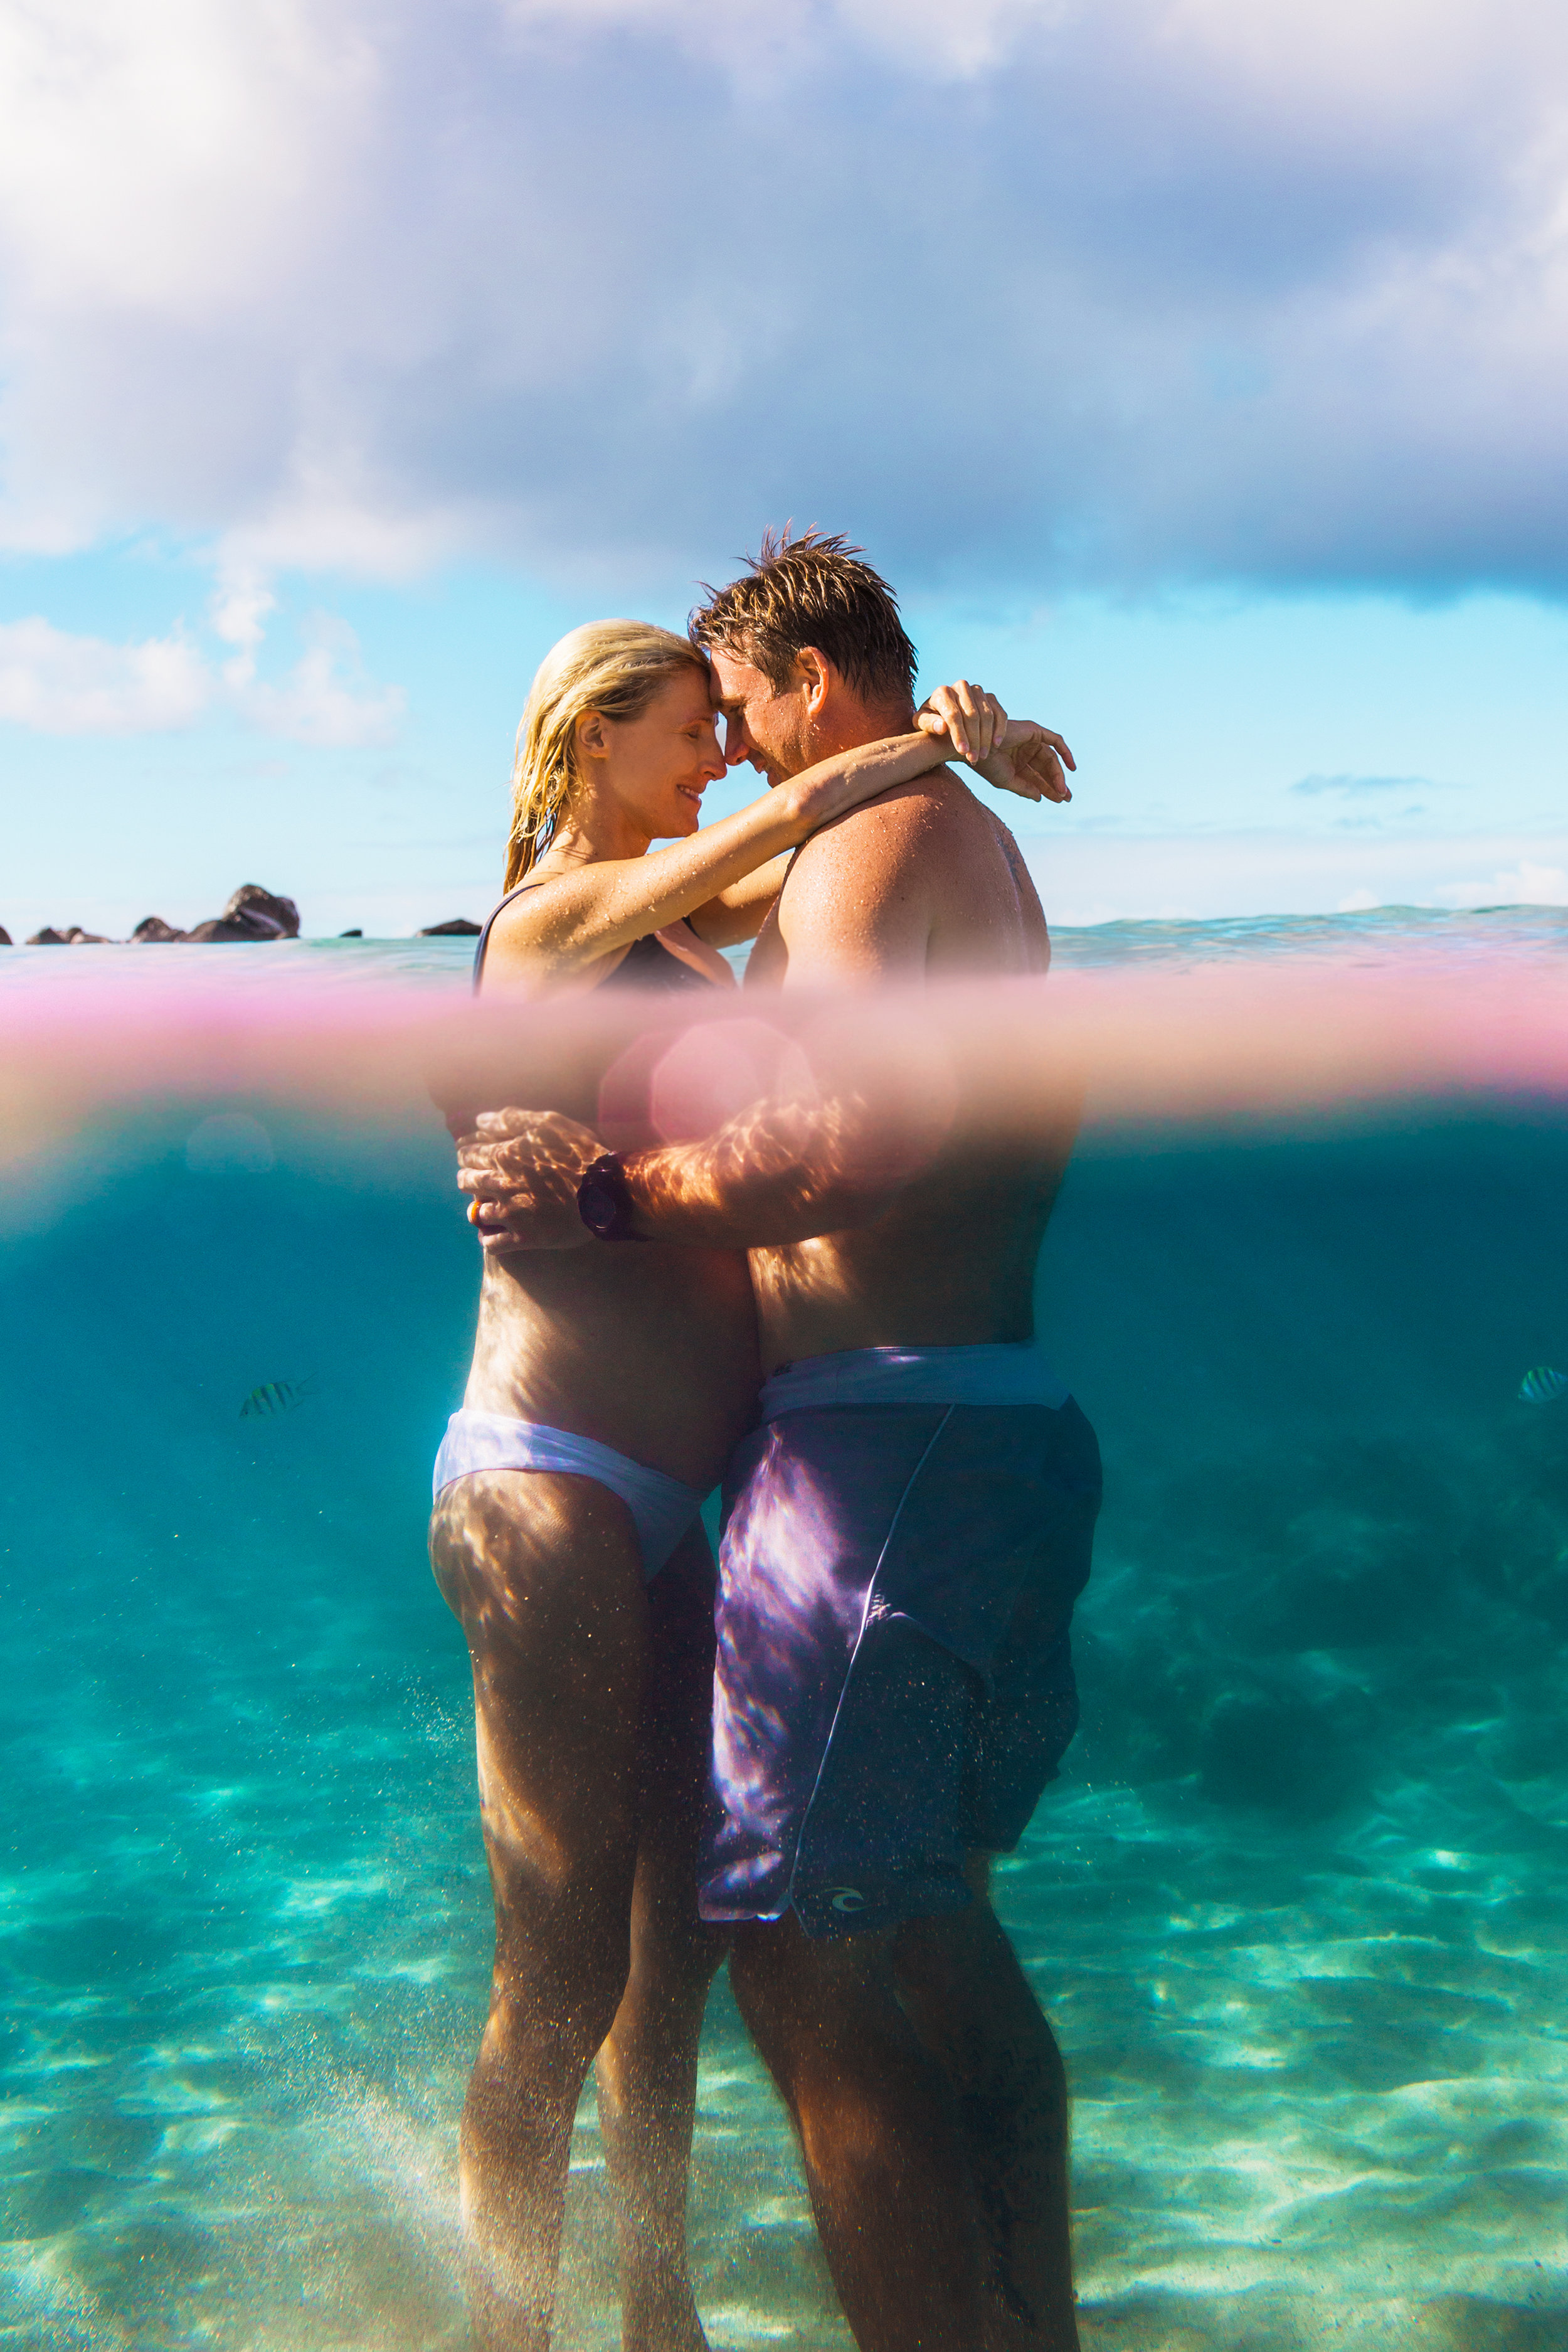 Underwater maternity. Oahu, Hawaii. New Wave Photography. Final.jpg